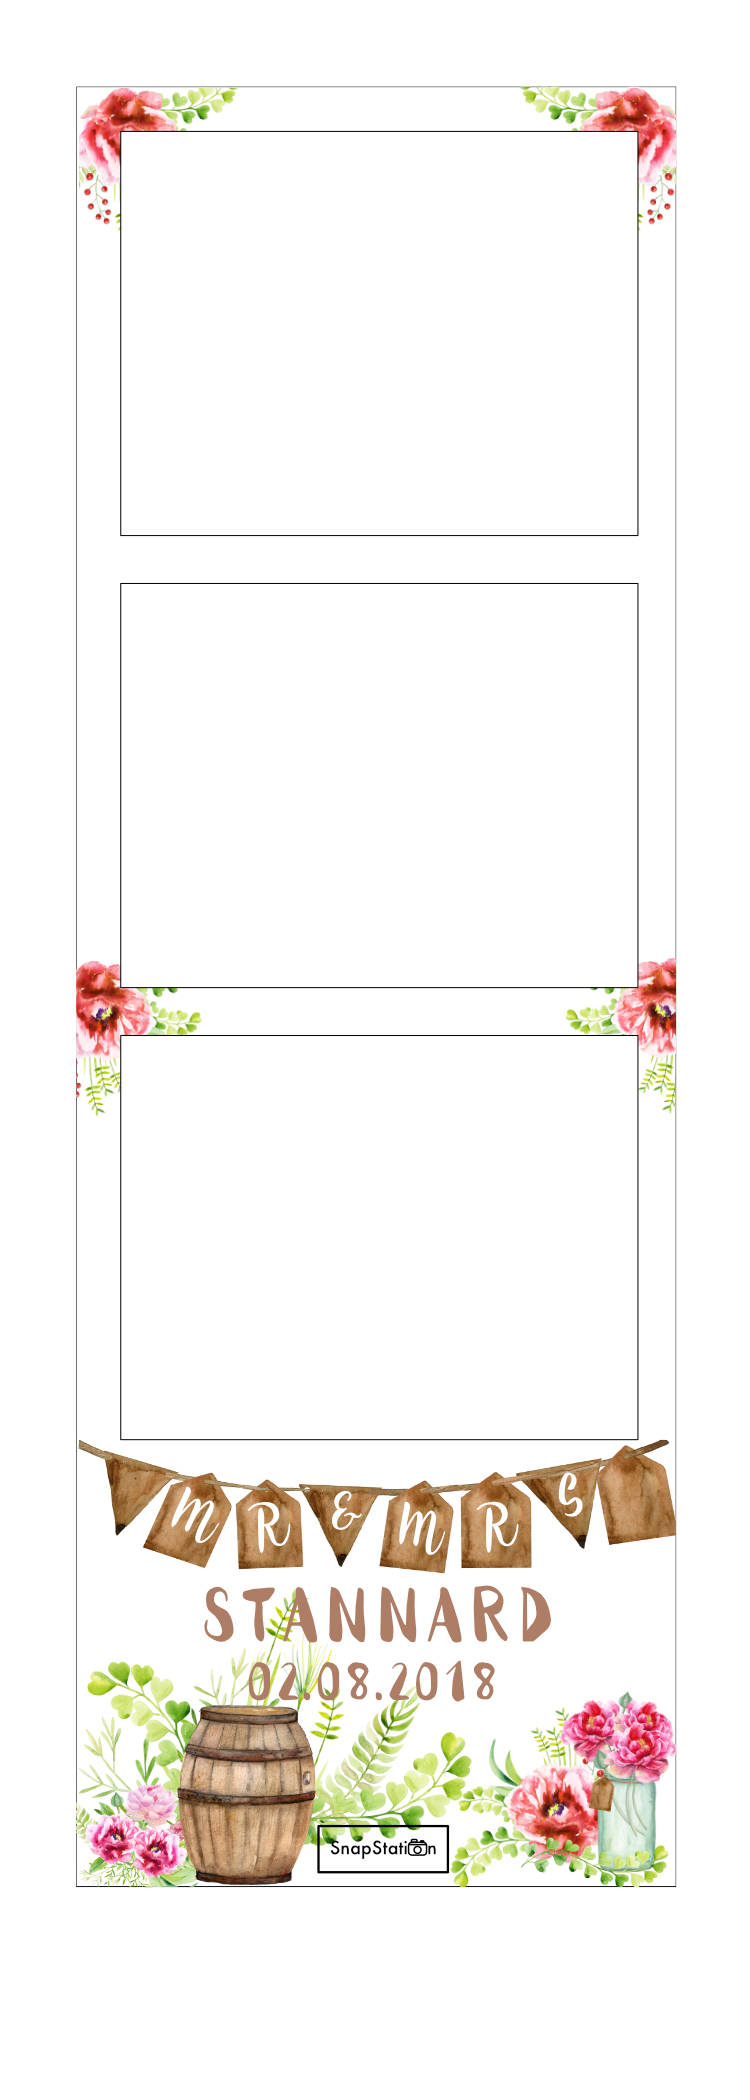 SnapStation Photo Booth Photo Strip - Rustic.jpg